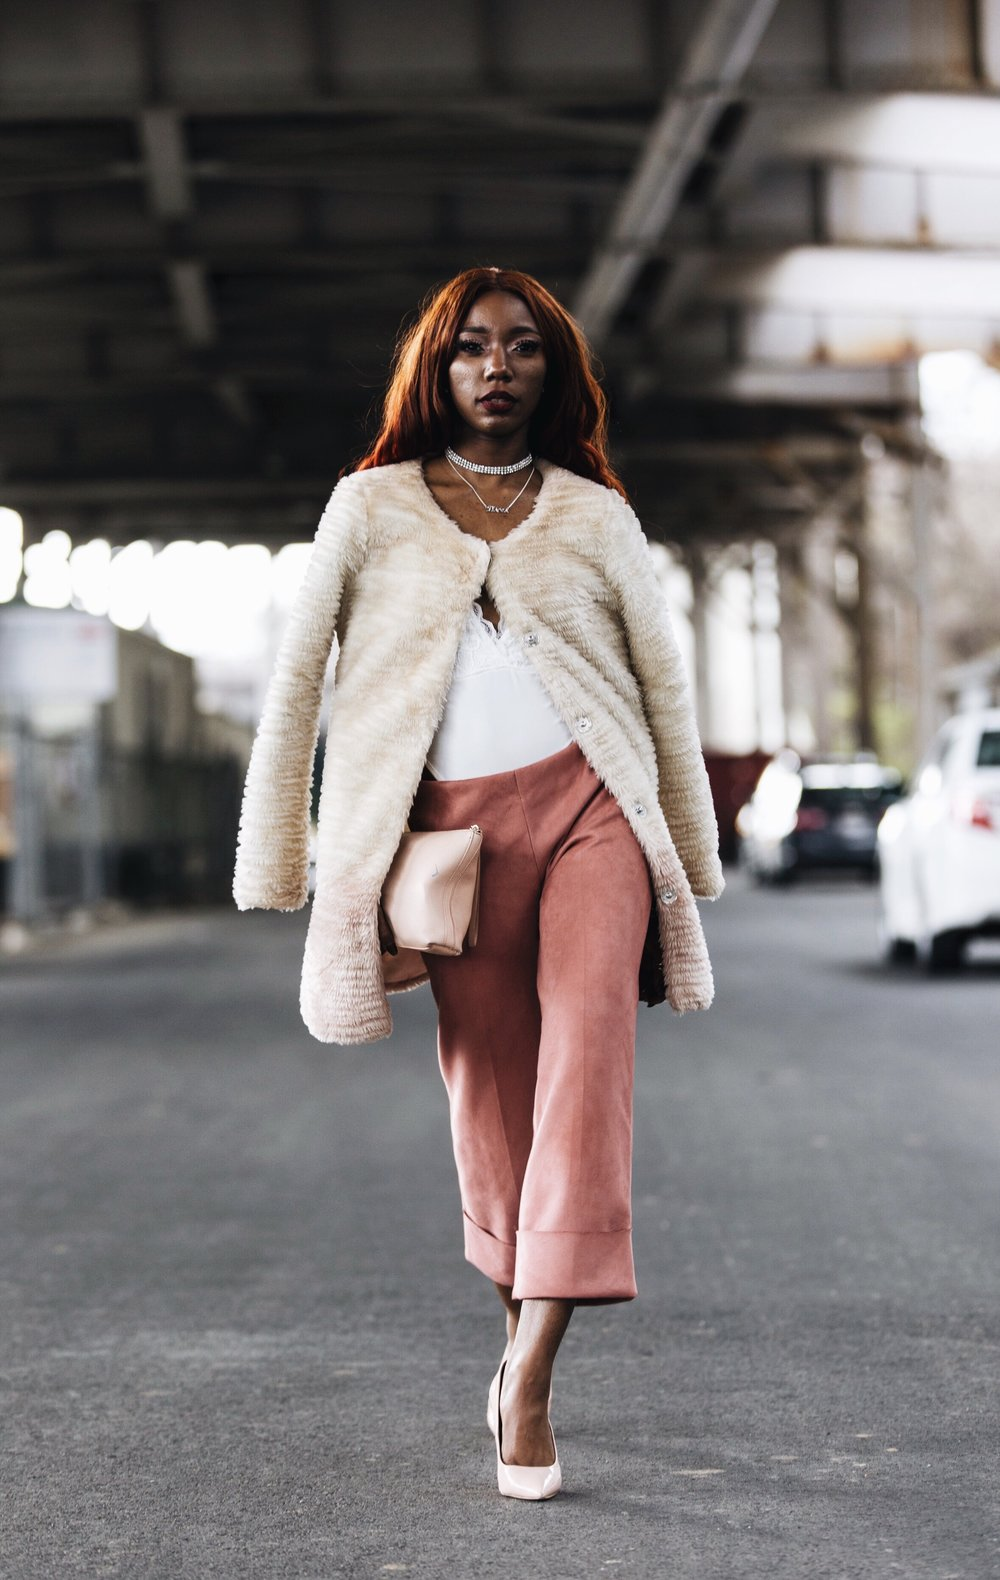 Image of theoriginaljcg model and founder of Marz Enterprise modeling agency wearing pink suede trousers, white top, fur jacket, and light pink heels captured by photographer The Creative Gentleman for Fashion Bomb Daily.This image was taken during the Conversations with Claire brunch event in Washington, D.C.